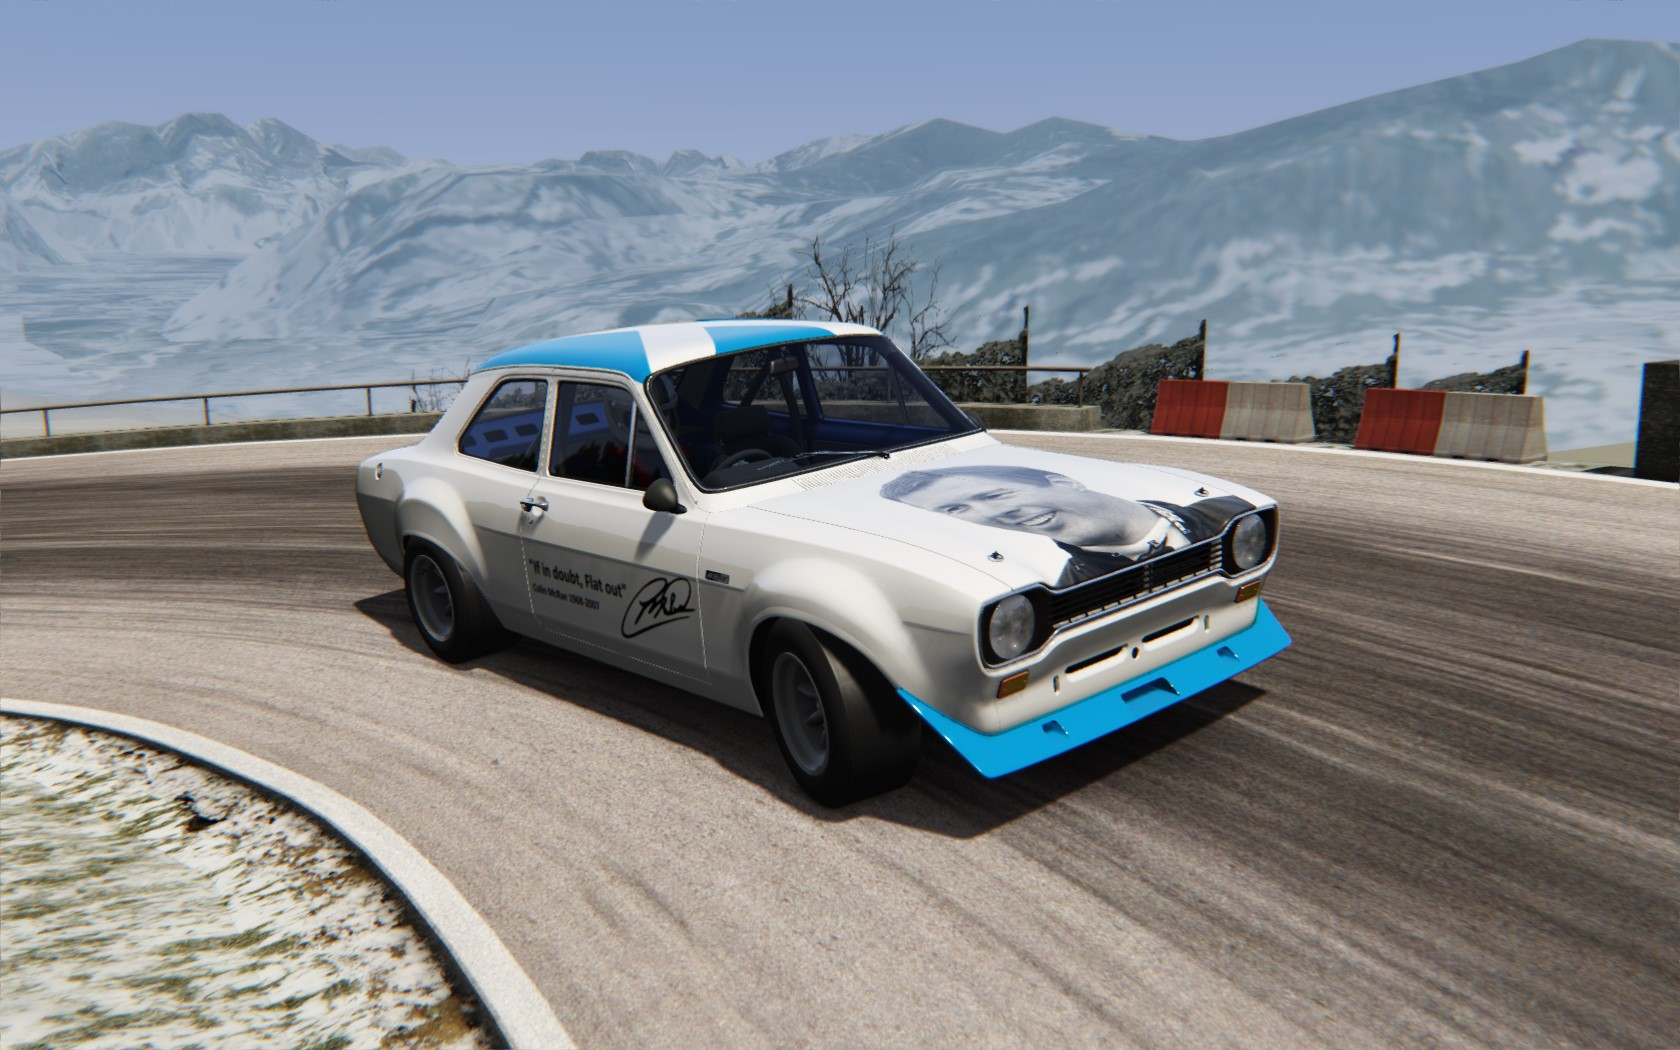 Screenshot_ks_ford_escort_mk1_trento-bondone-winter_25-12-116-11-15-43.jpg